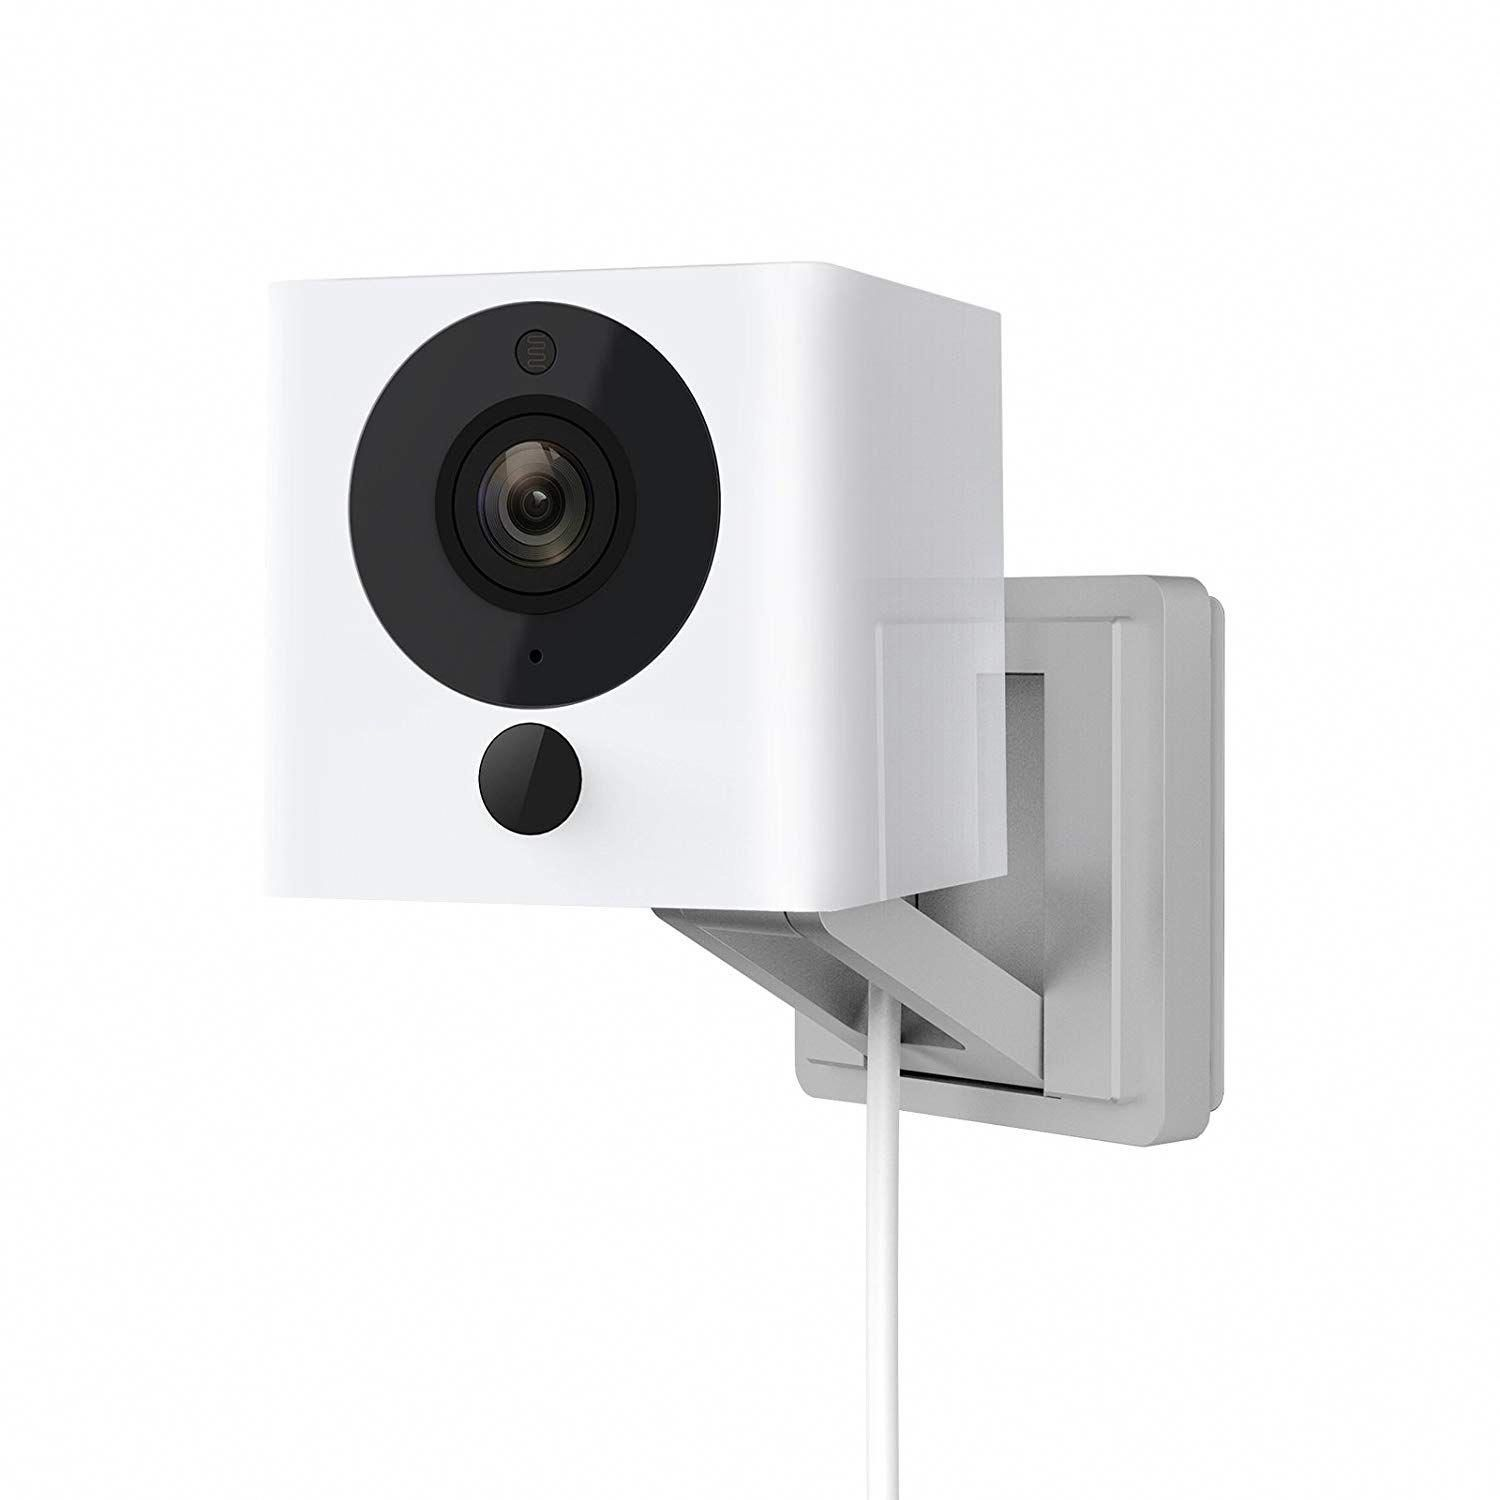 Indoor Security Camera With Night Vision Camera Indoor Security Securitycam Security Cameras For Home Wireless Home Security Systems Wireless Home Security